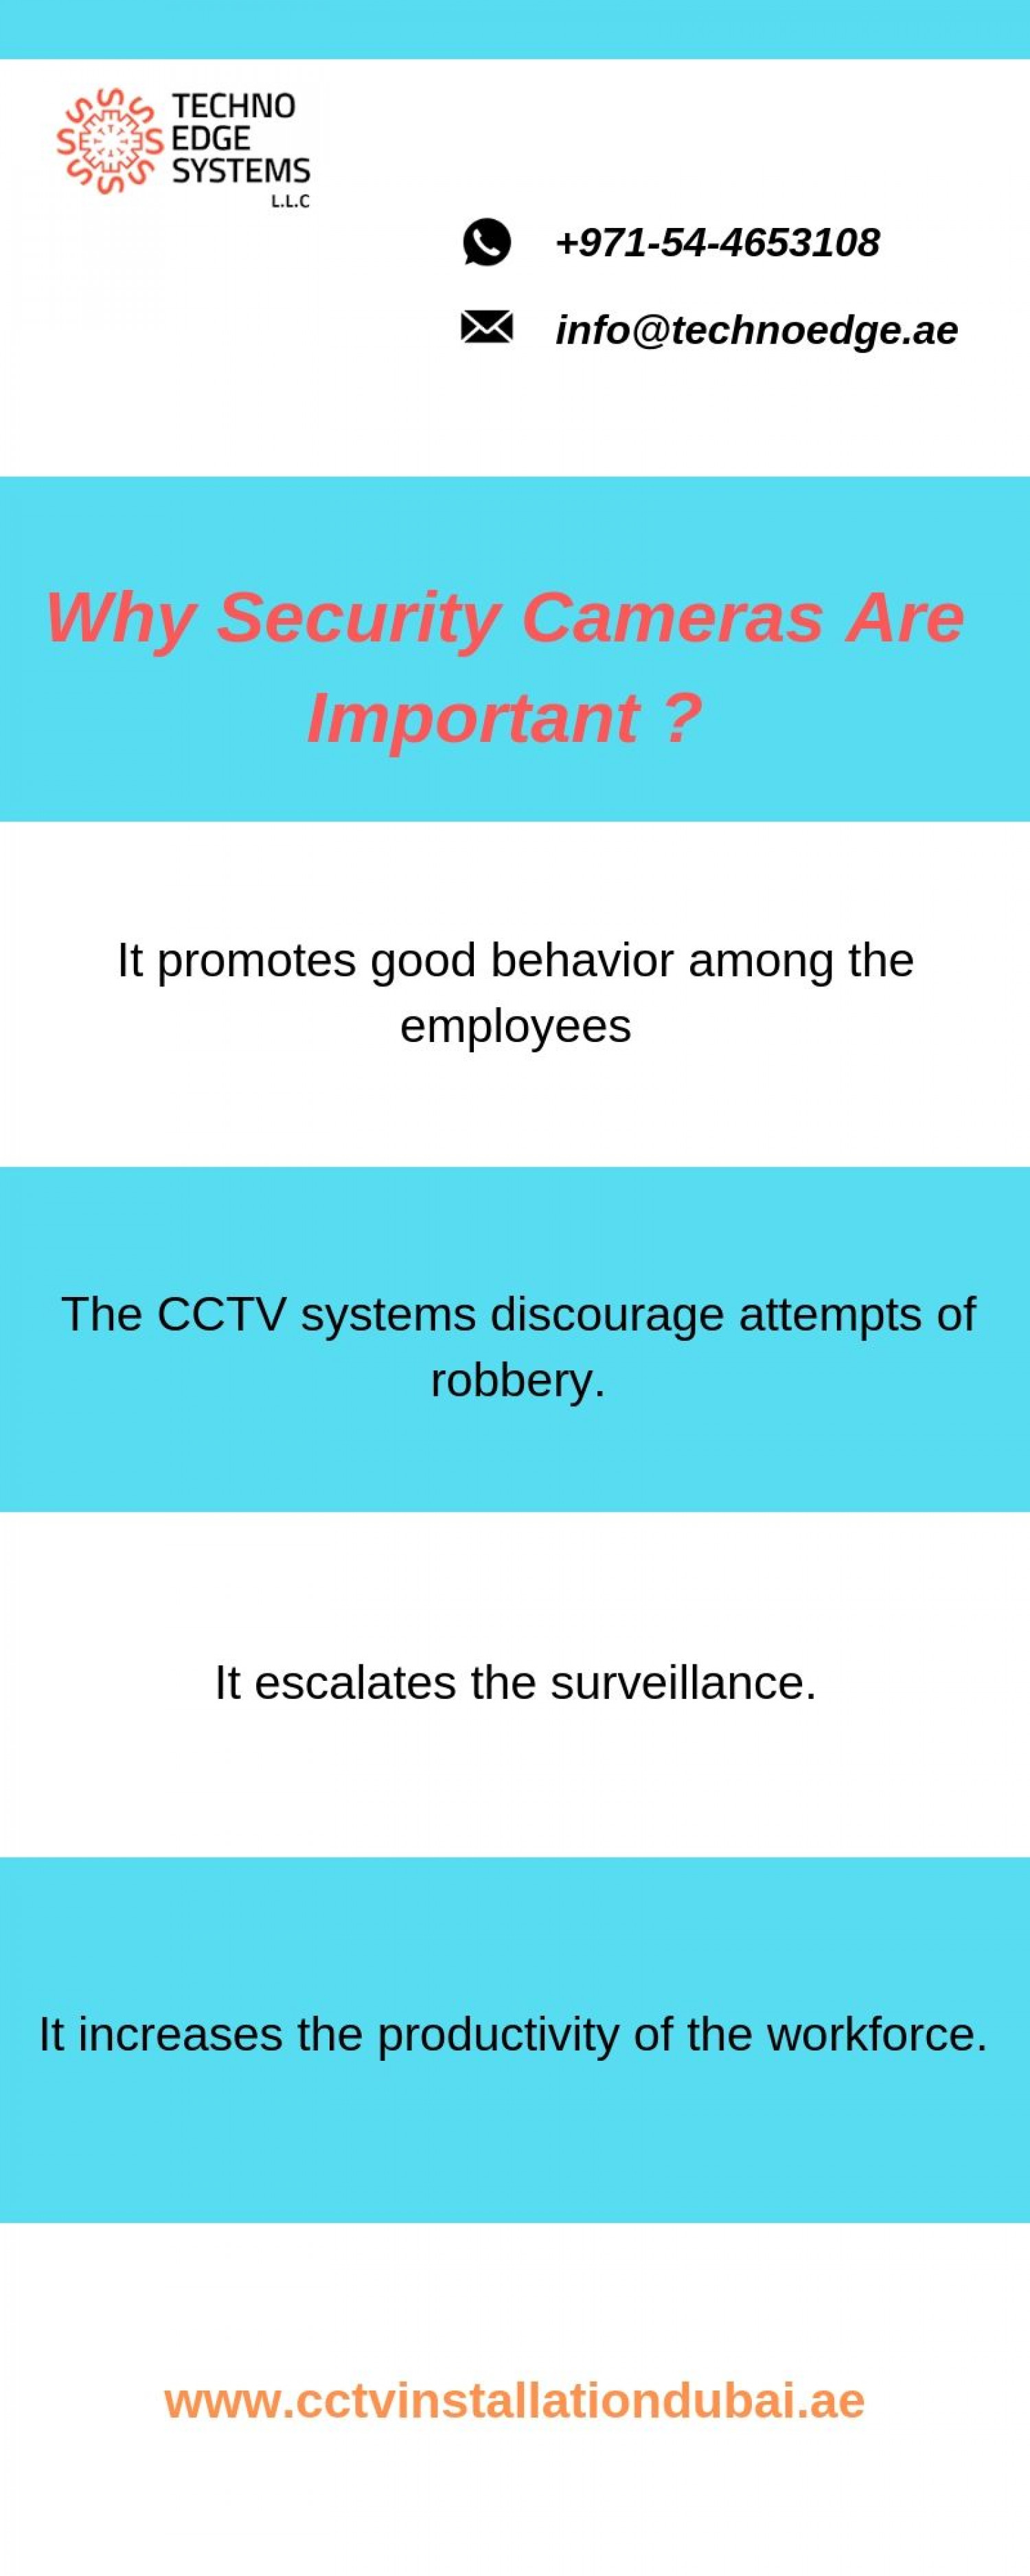 Why Security Cameras Are Important ? Infographic